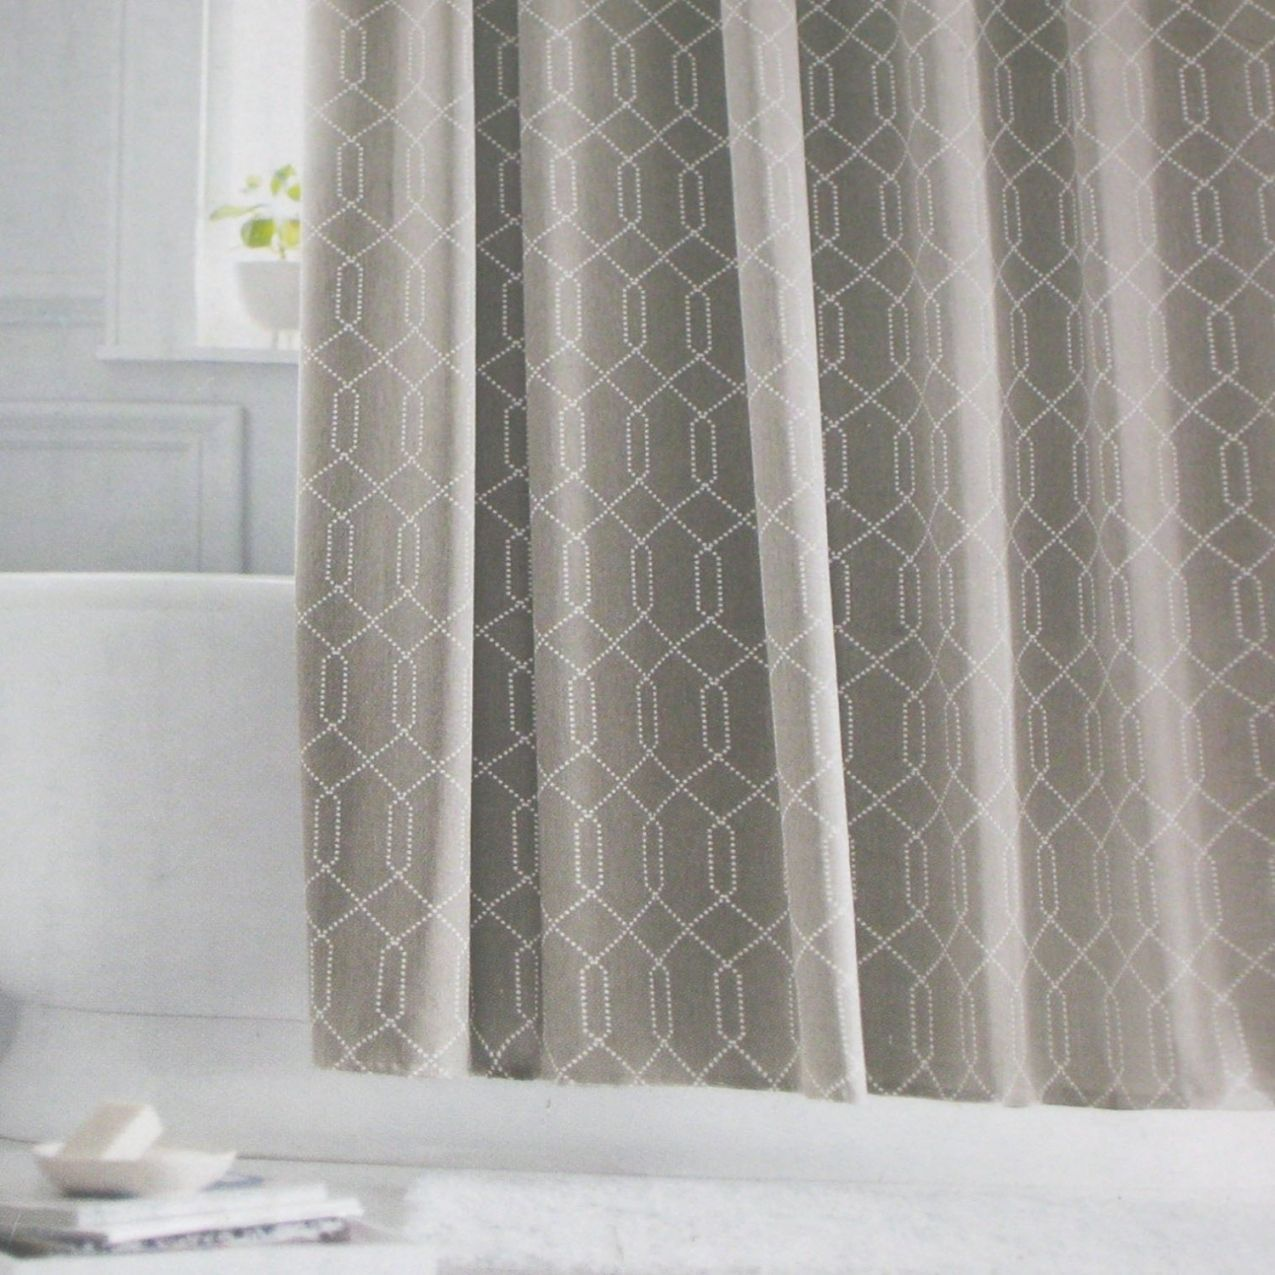 Most Amazing Extra Long Shower Curtains At Target Wc09doi87 With